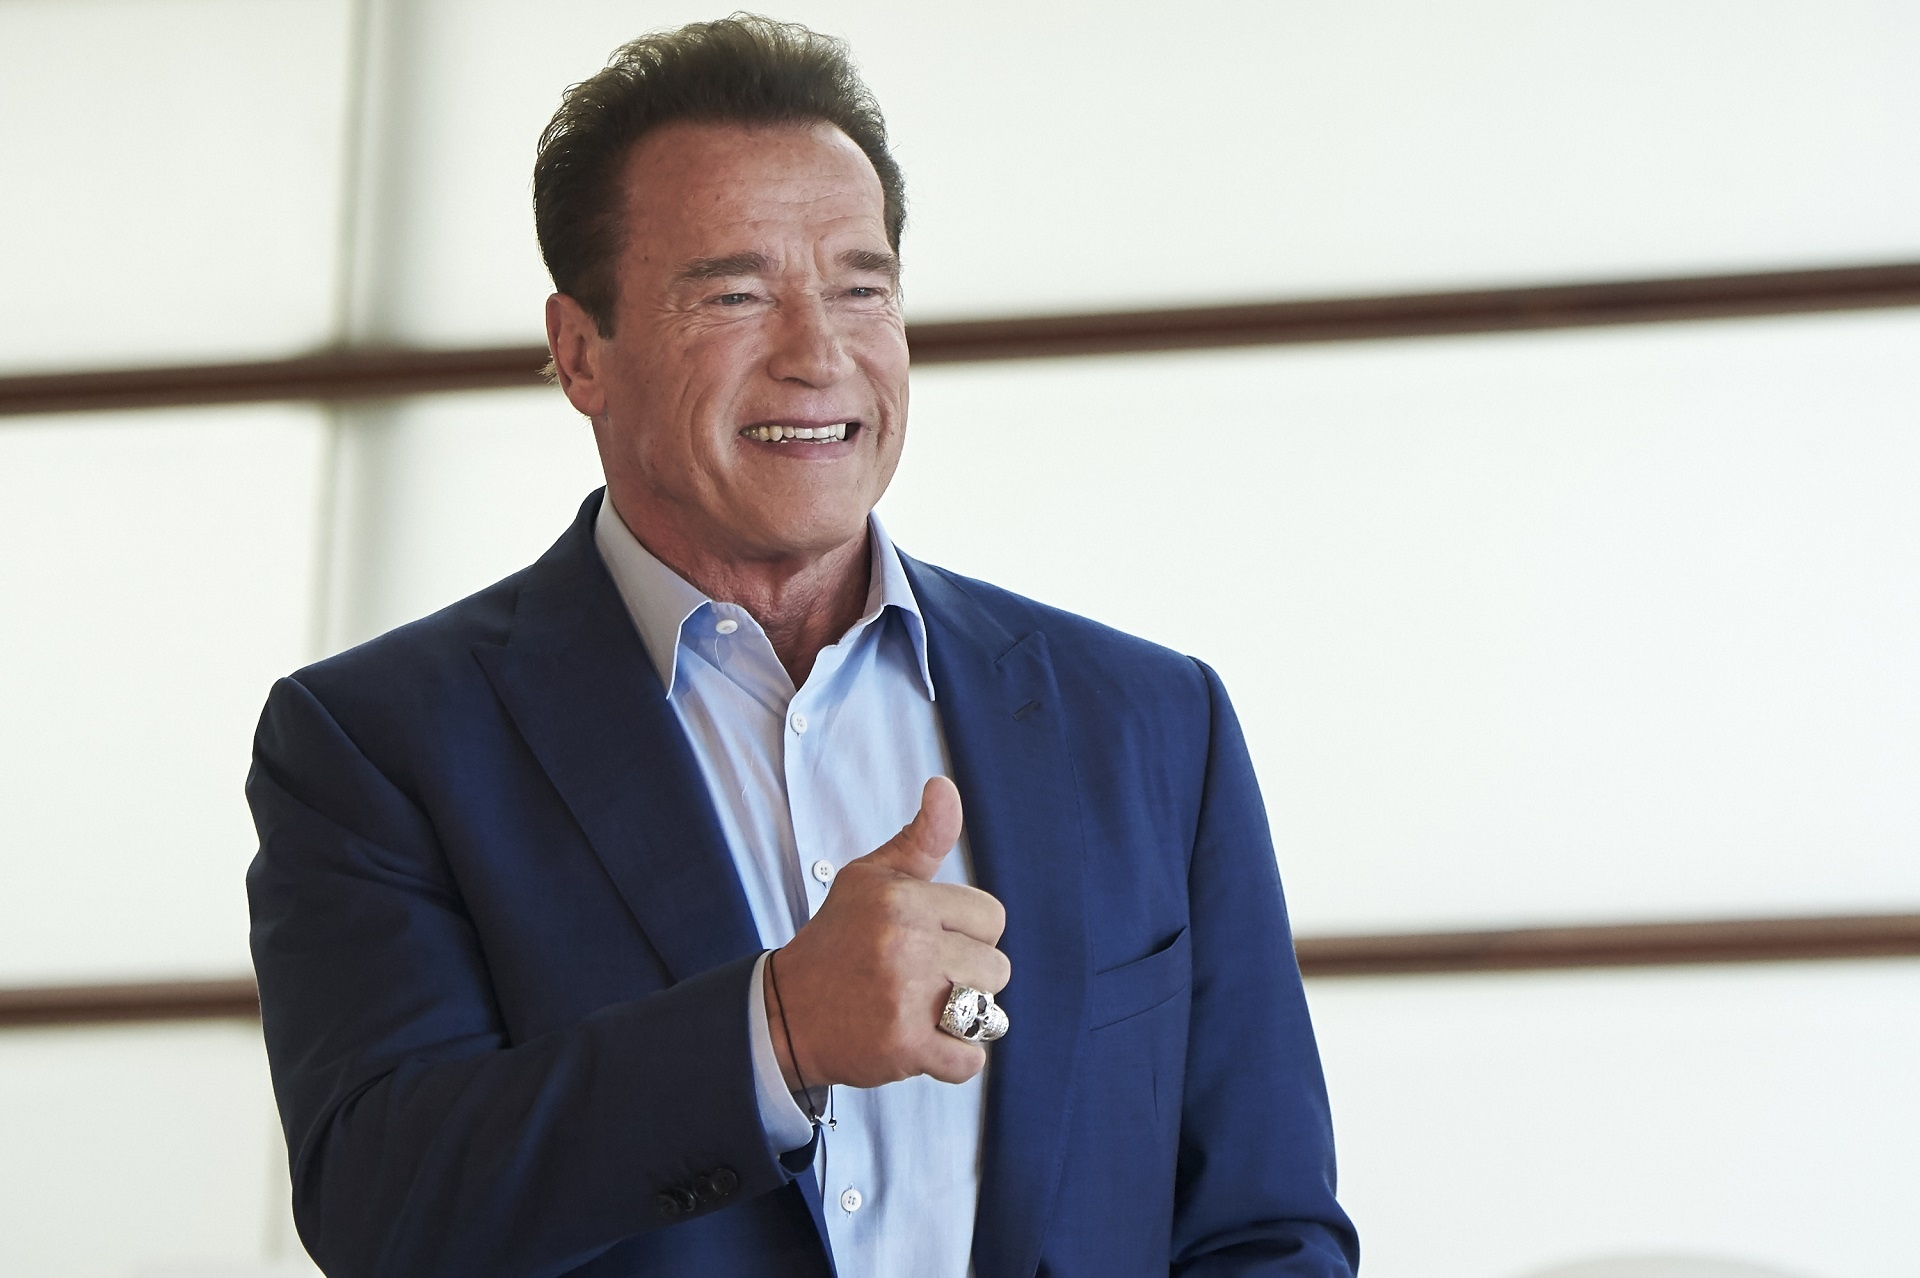 Trump critic Arnold Schwarzenegger thanks the president for addressing California homelessness